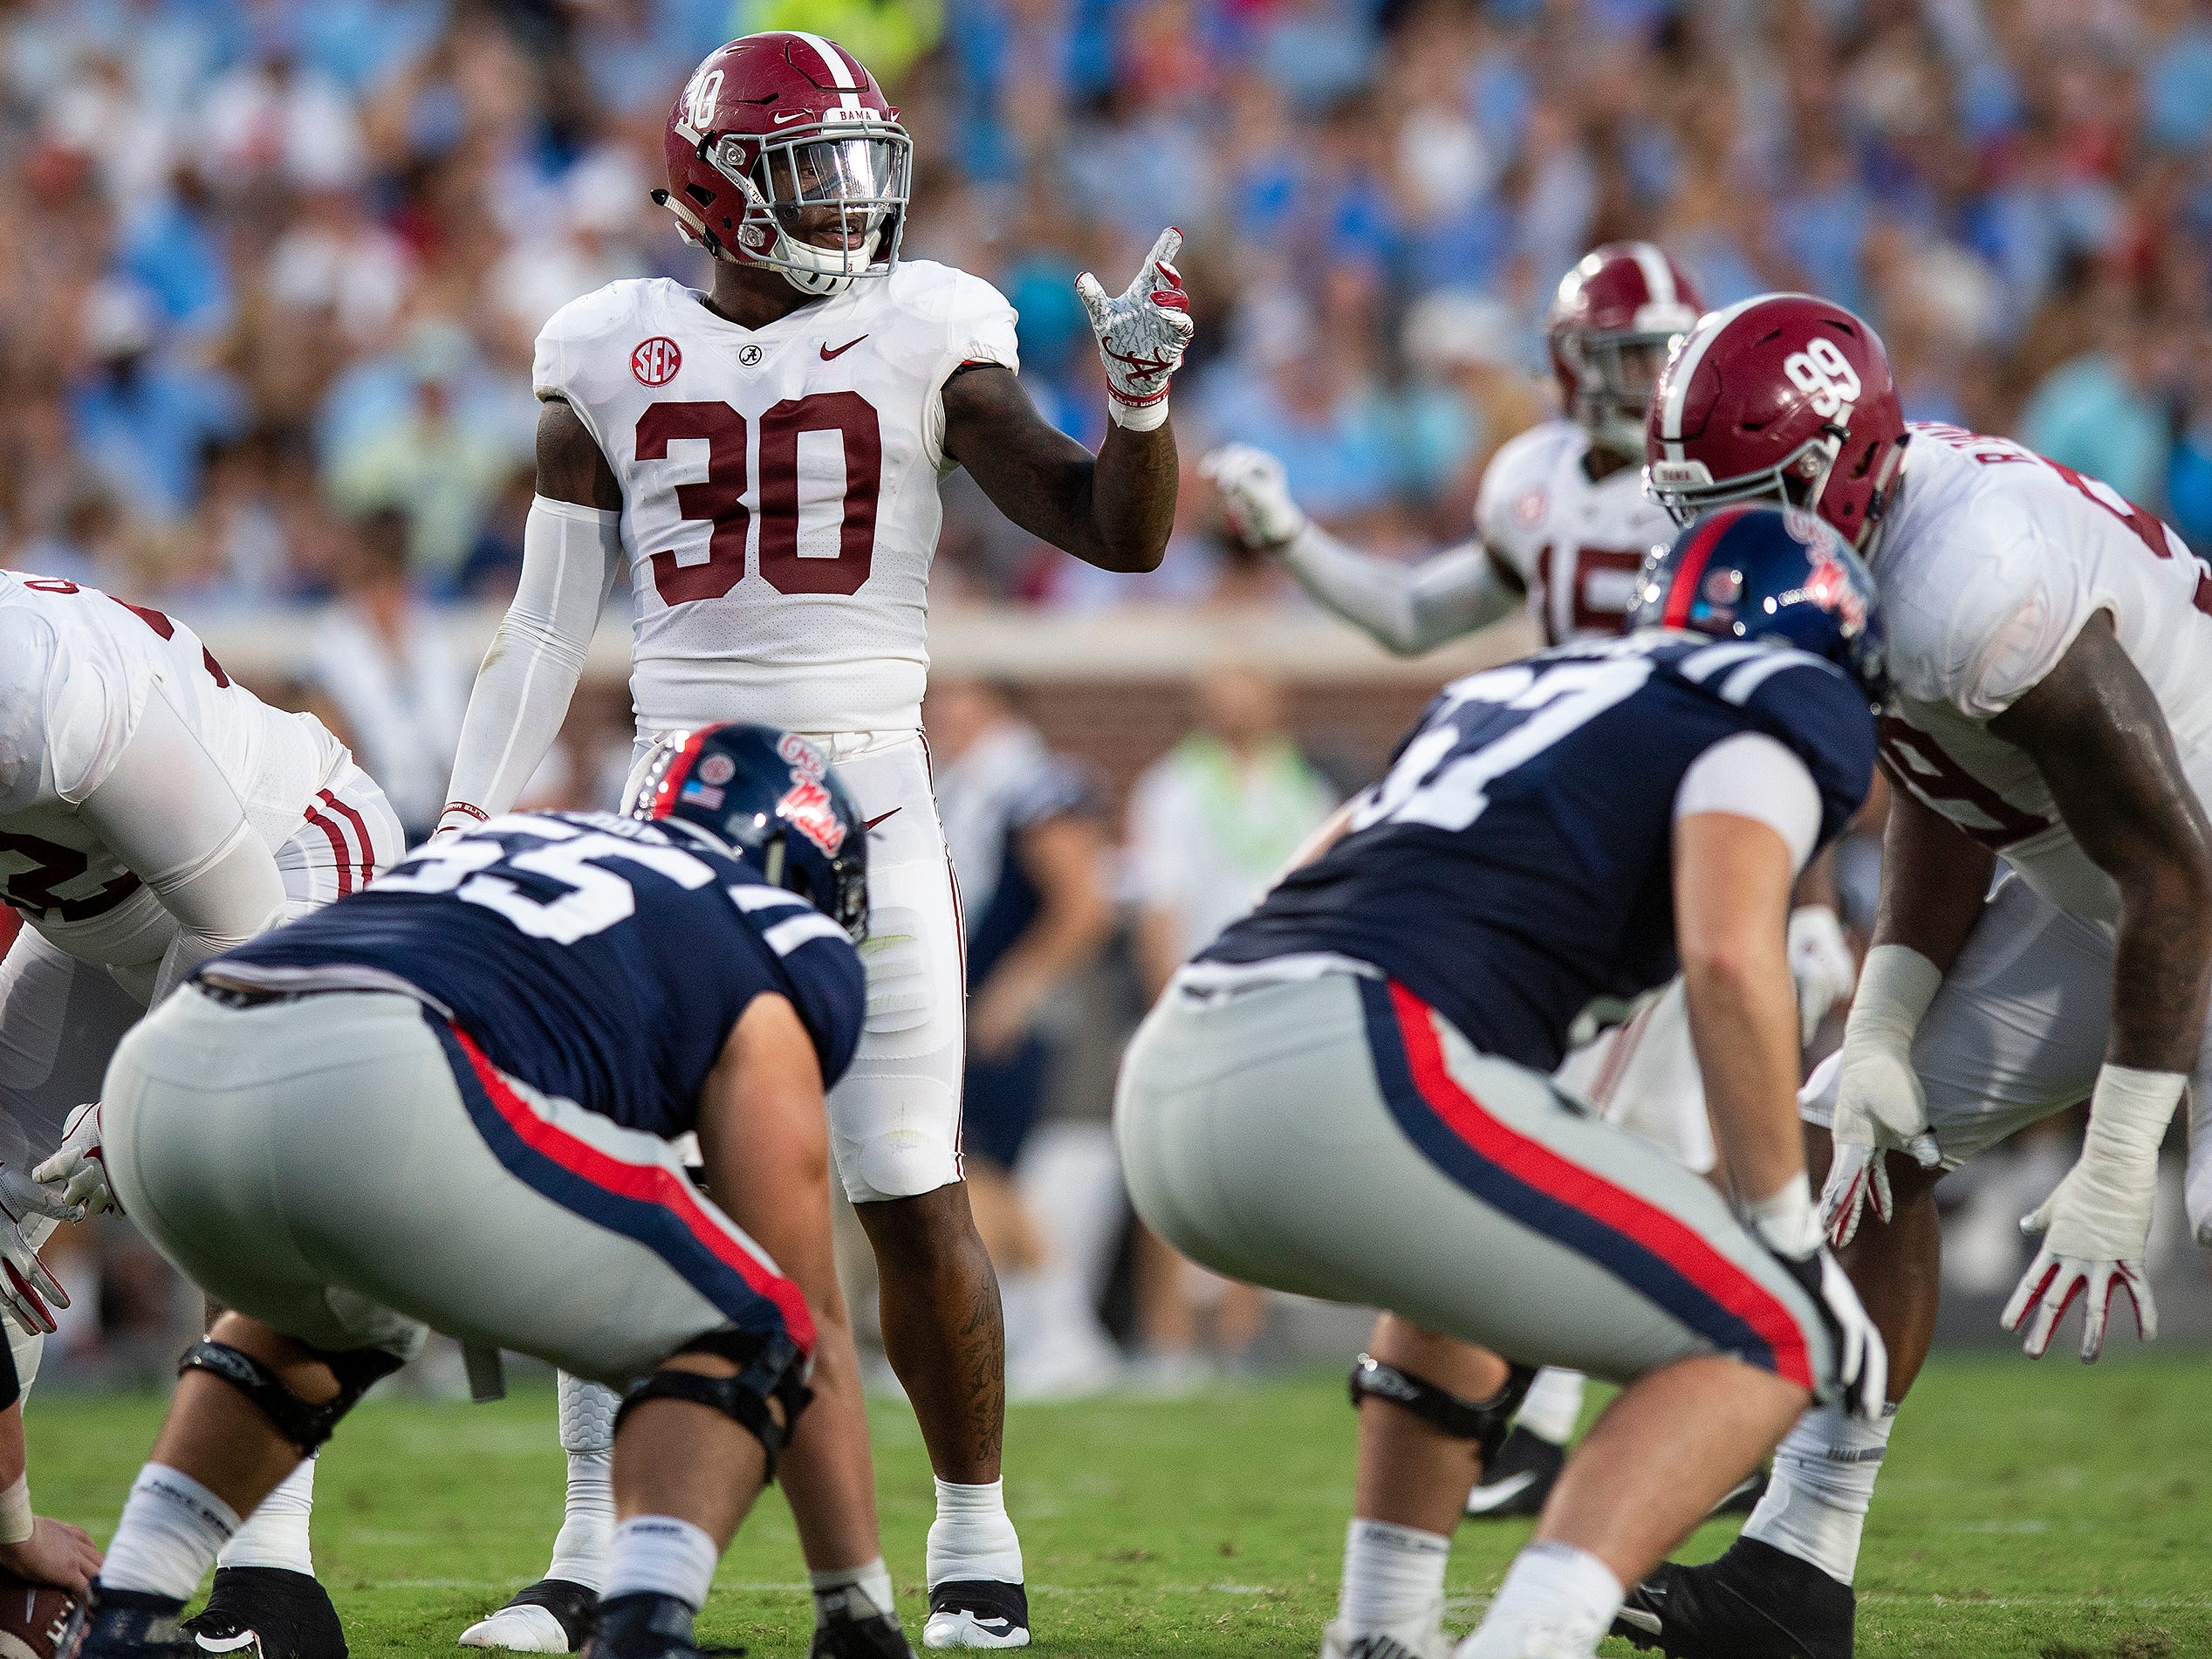 Alabama linebacker Mack Wilson (30) directs the defense against Ole Miss in first half action in Oxford, Ms., on Saturday September 15, 2018.